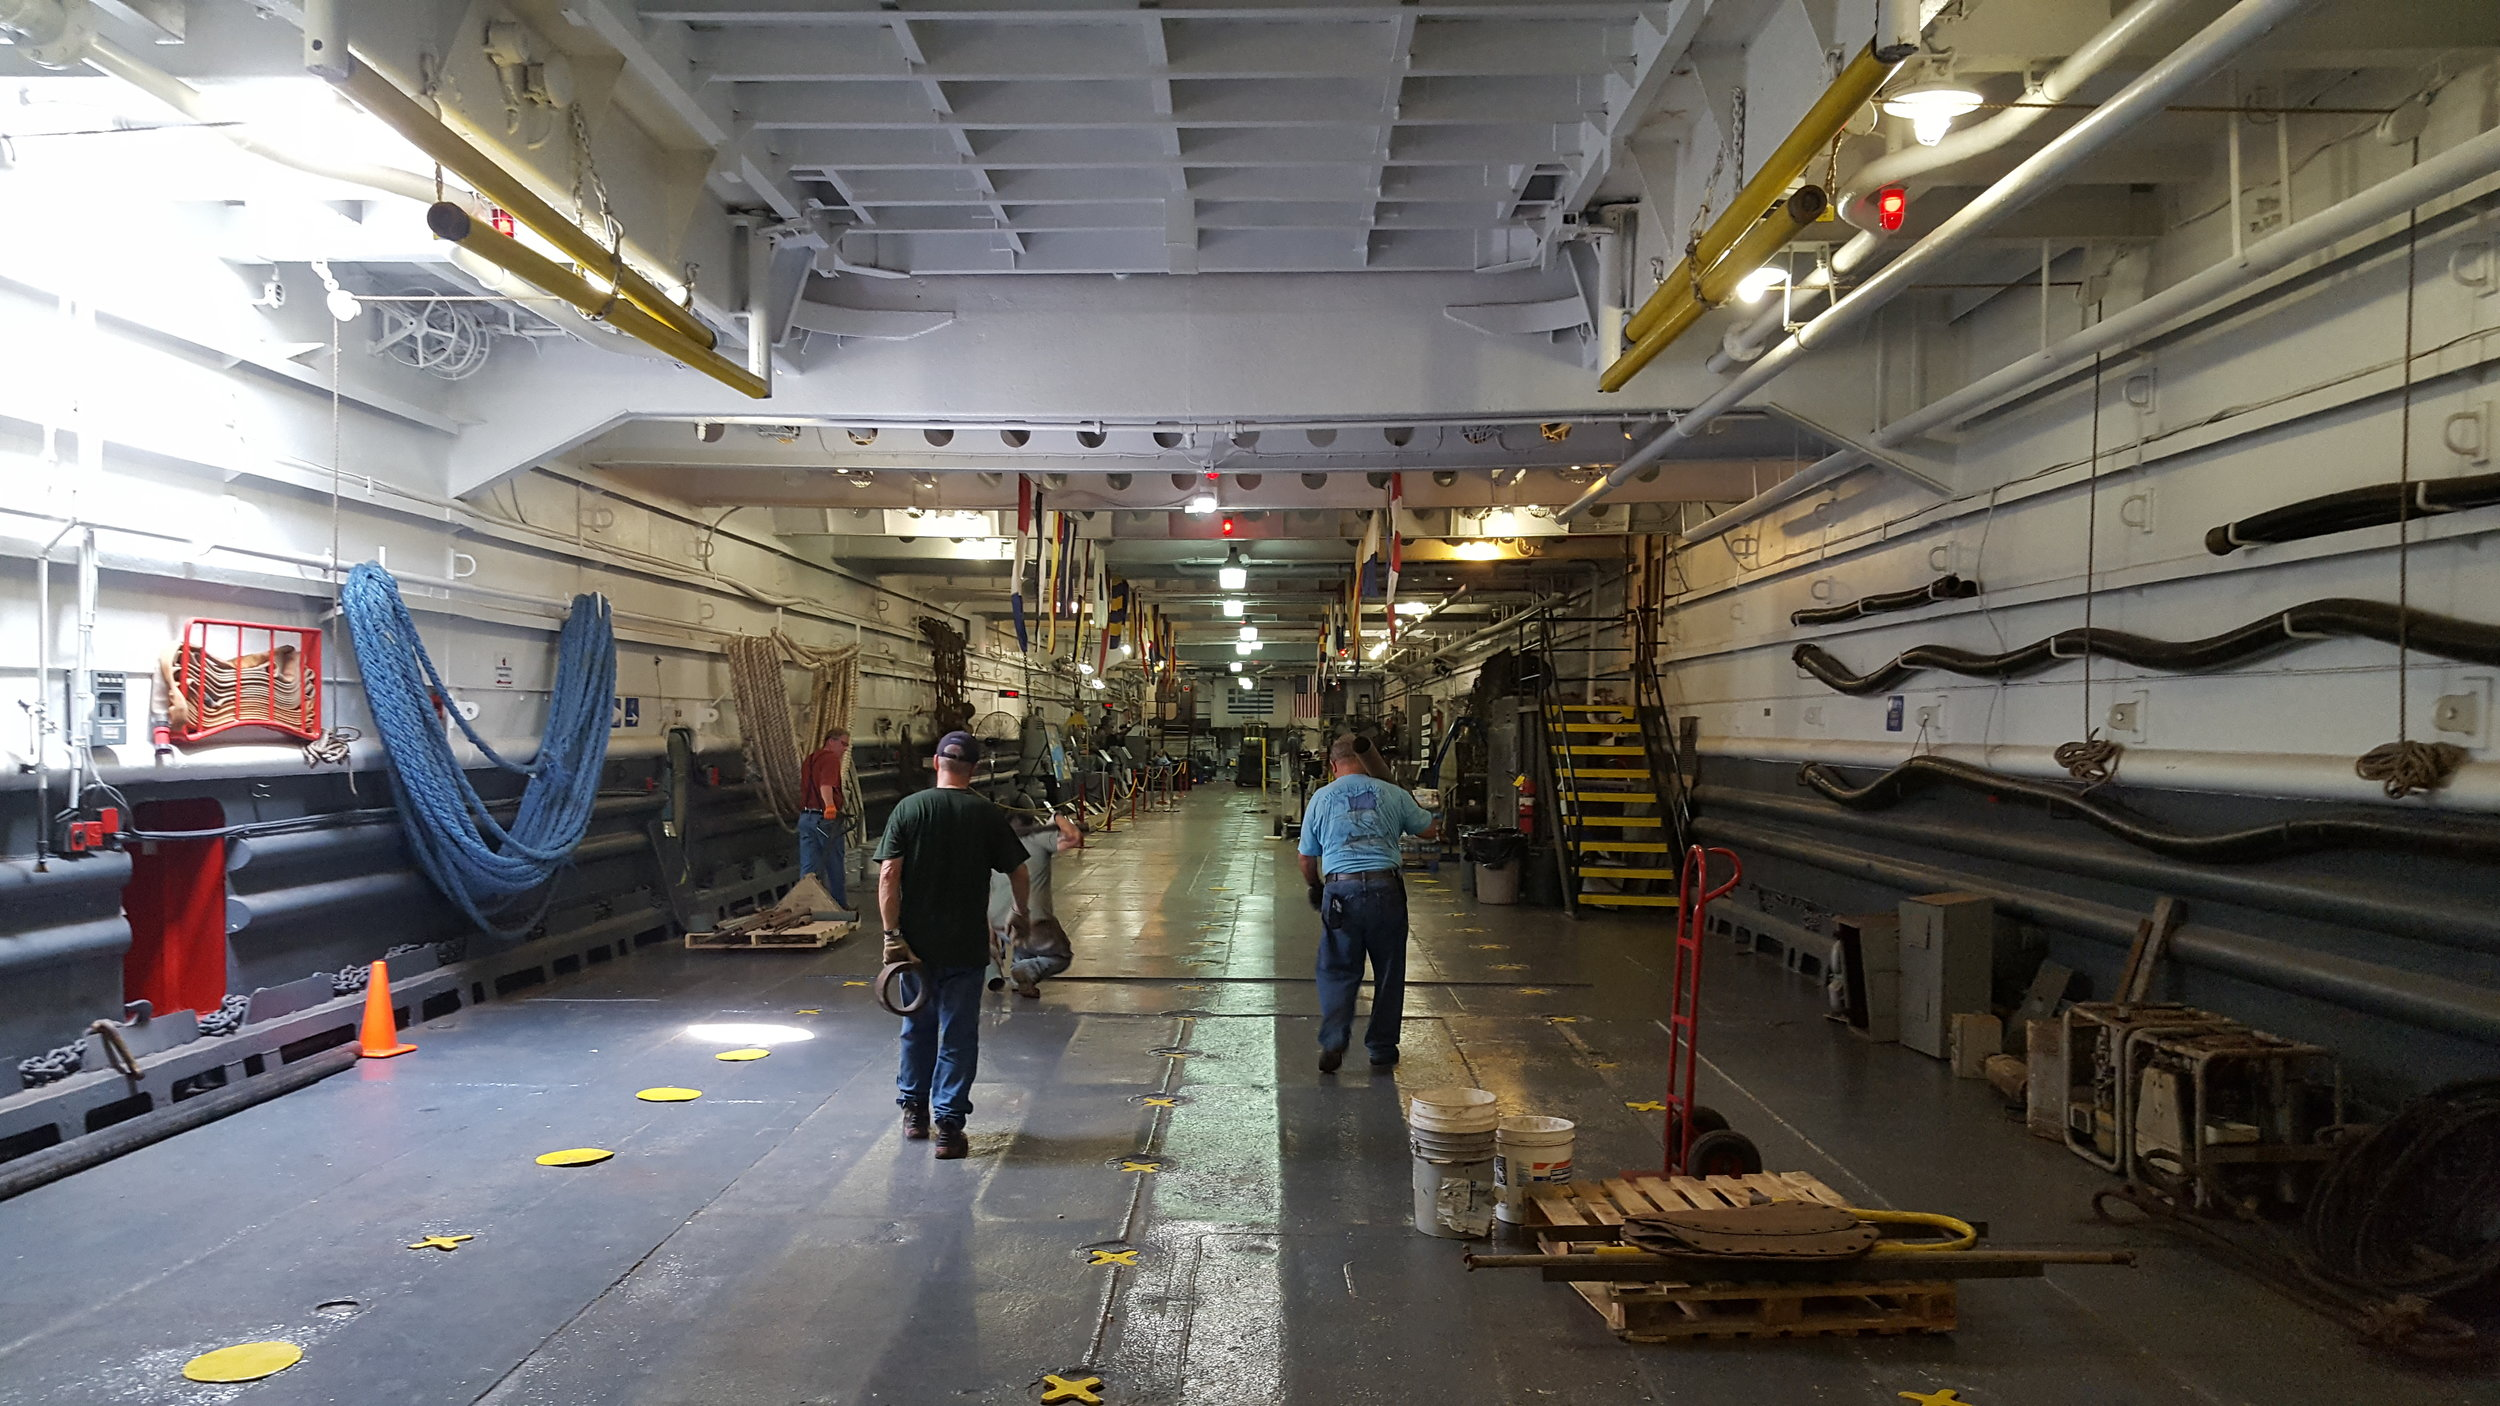 The tank deck of USS LST-325 looking aft from the bow. Much of the tank deck is currently used as exhibit space. Photo: Author.